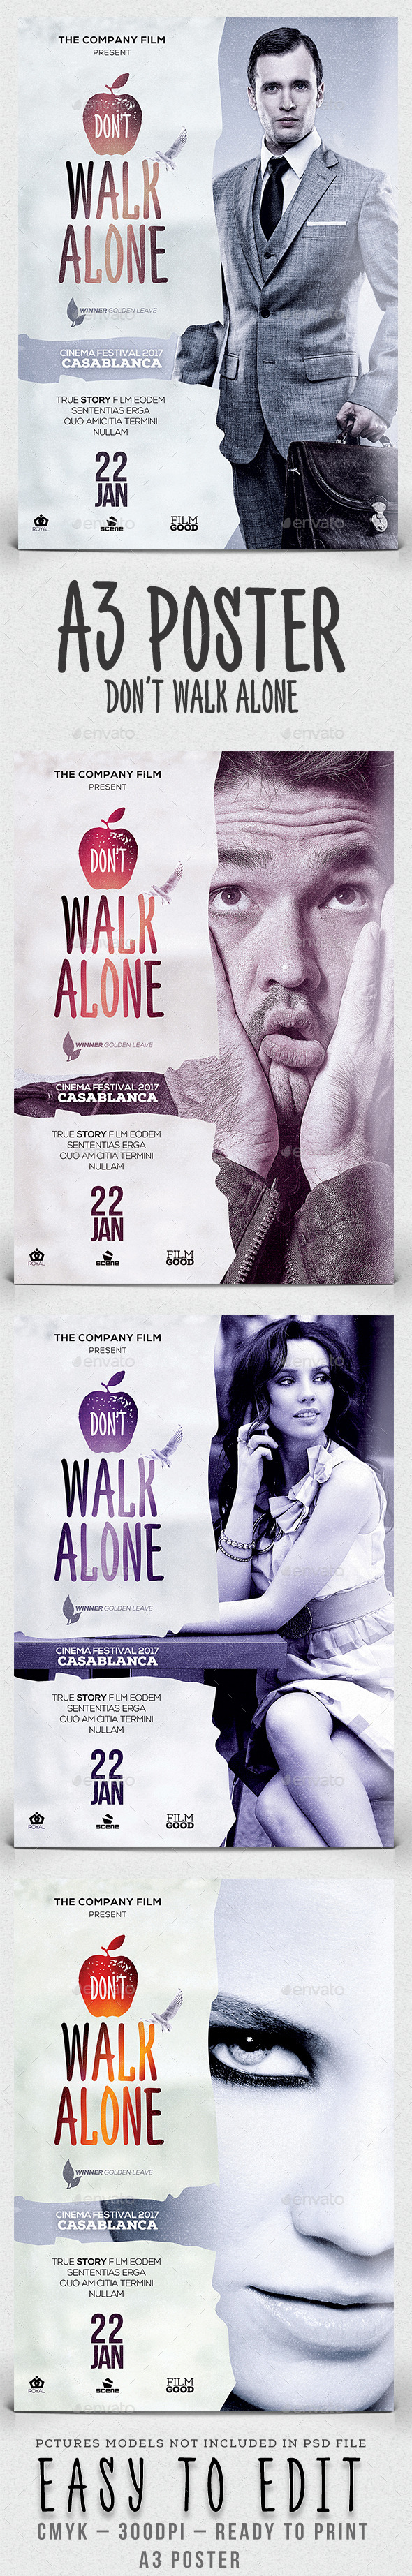 GraphicRiver A3 Don't Walk Alone Poster Film Template 11553757